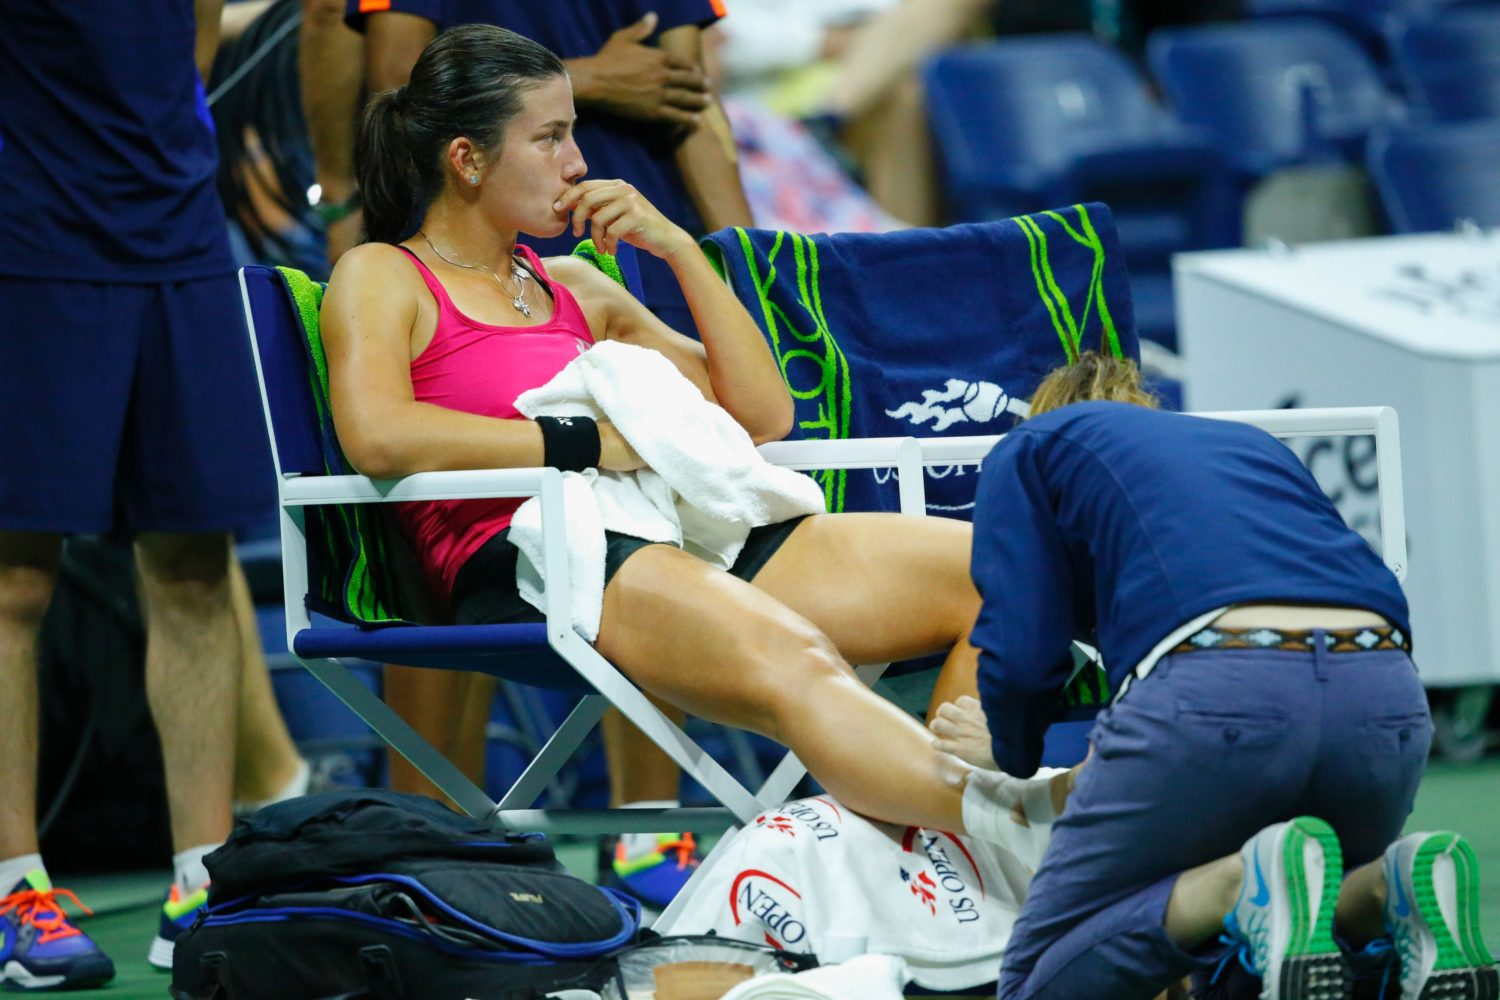 Anastasija Sevastova of Latvia receives medical assistance as she plays against Caroline Wozniacki of Denmark  during their 2016 US Open Women's Singles match at the USTA Billie Jean King National Tennis Center in New York on September 6, 2016. / AFP PHOTO / KENA BETANCUR